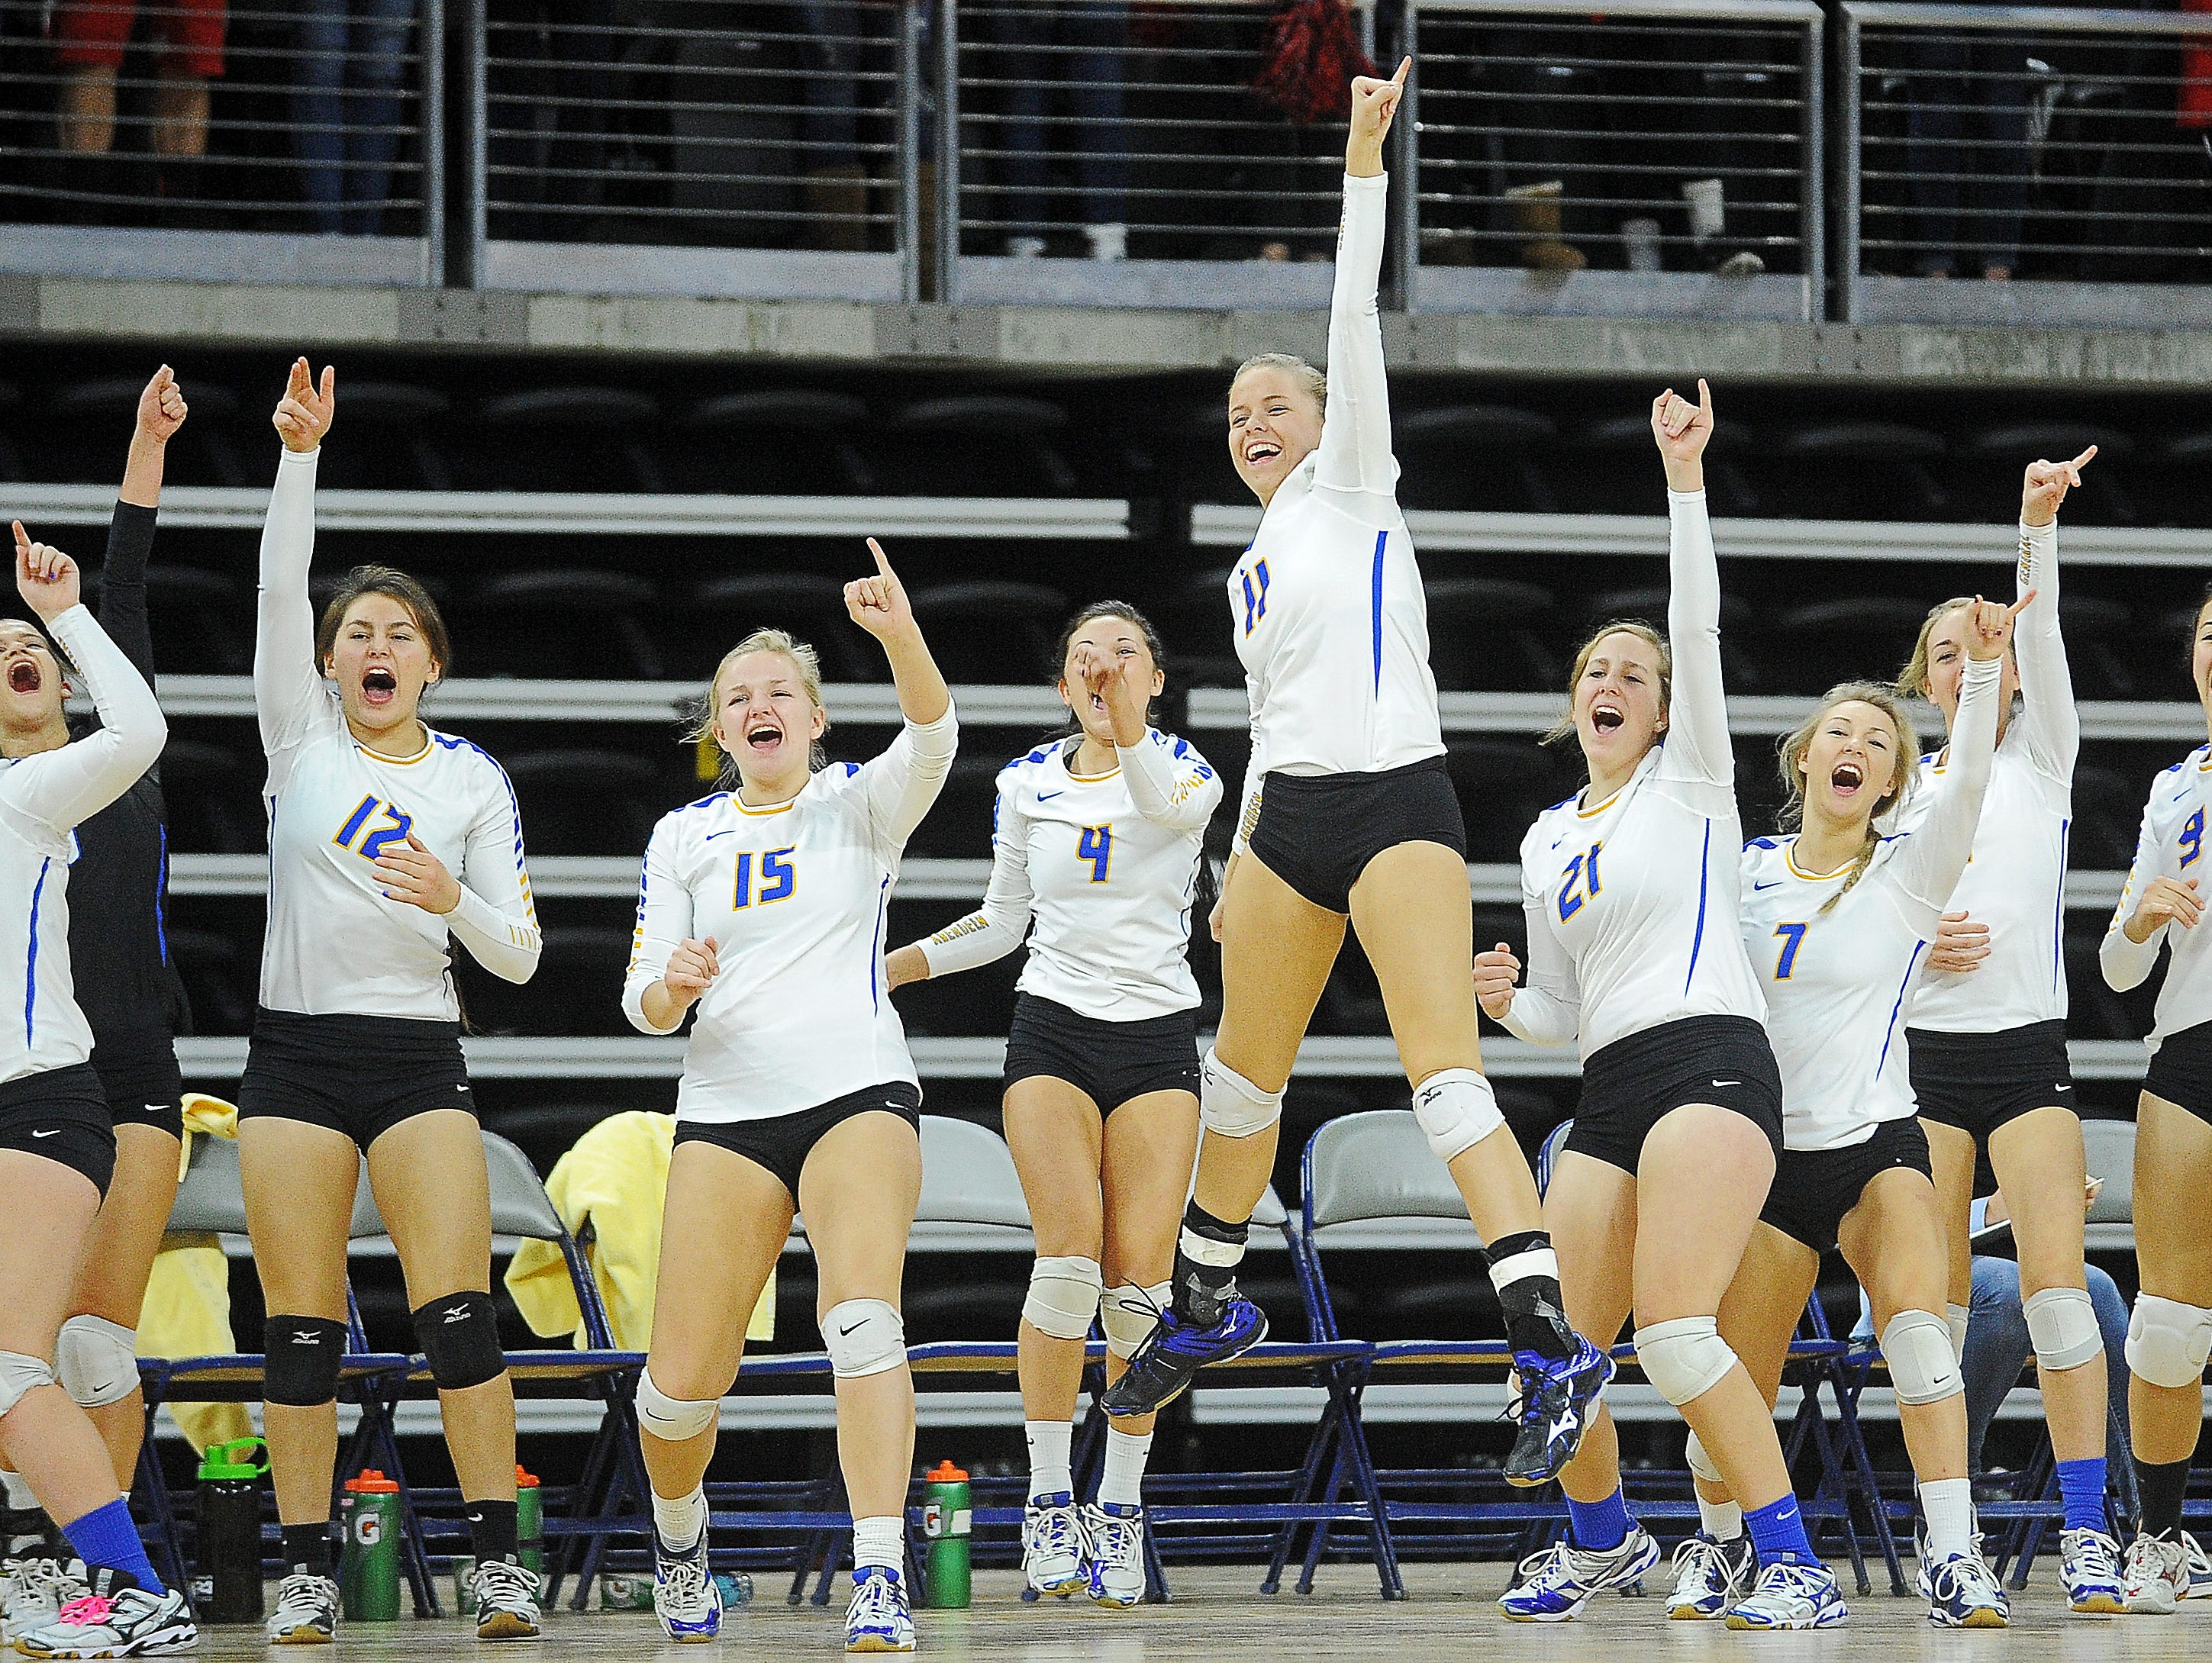 Aberdeen Central players react from the sidelines after their team scored during the South Dakota State High School Class AA championship volleyball match against Brandon Valley Saturday, Nov. 21, 2015, at the Denny Sanford Premier Center in Sioux Falls.